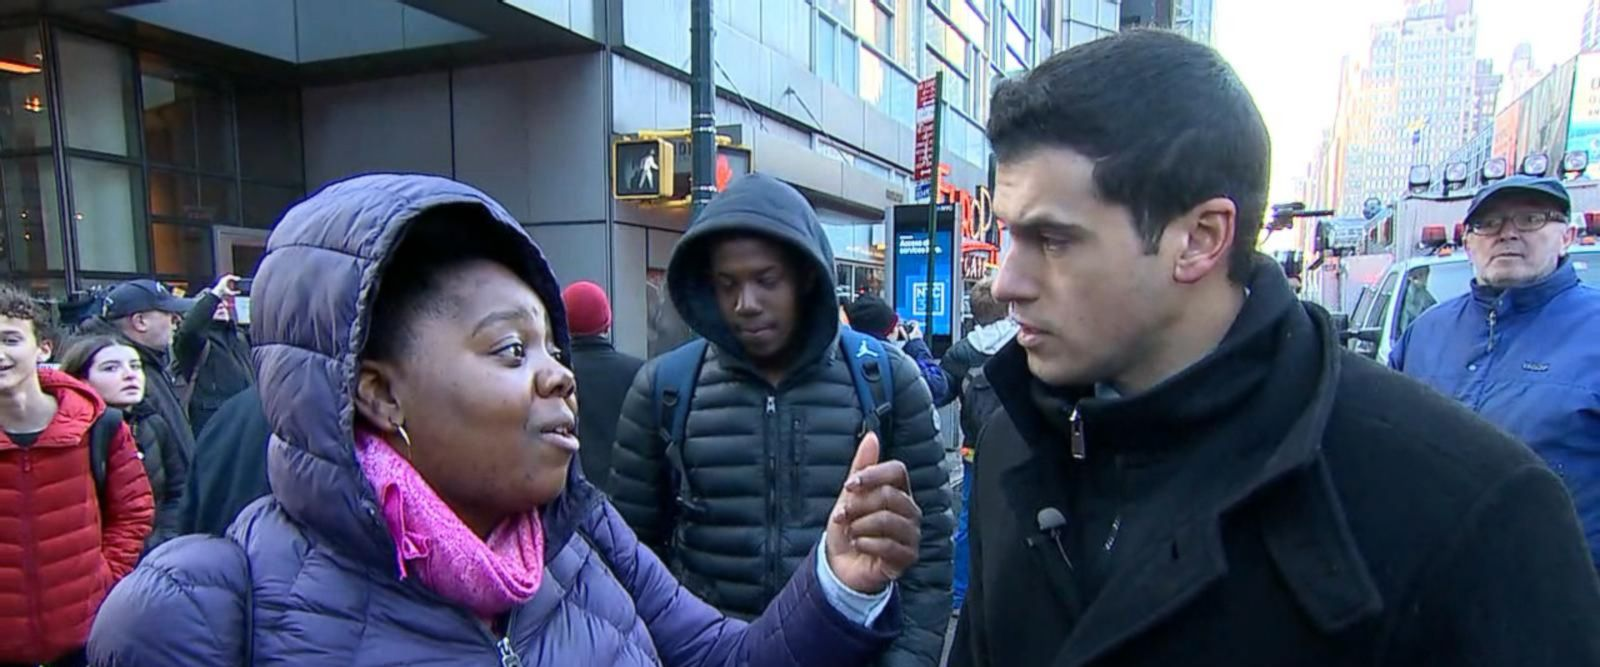 VIDEO: Christina Bathea was on-time to make her 7:30 a.m. start-time at her security guard job next to the Port Authority Bus Terminal Monday morning.